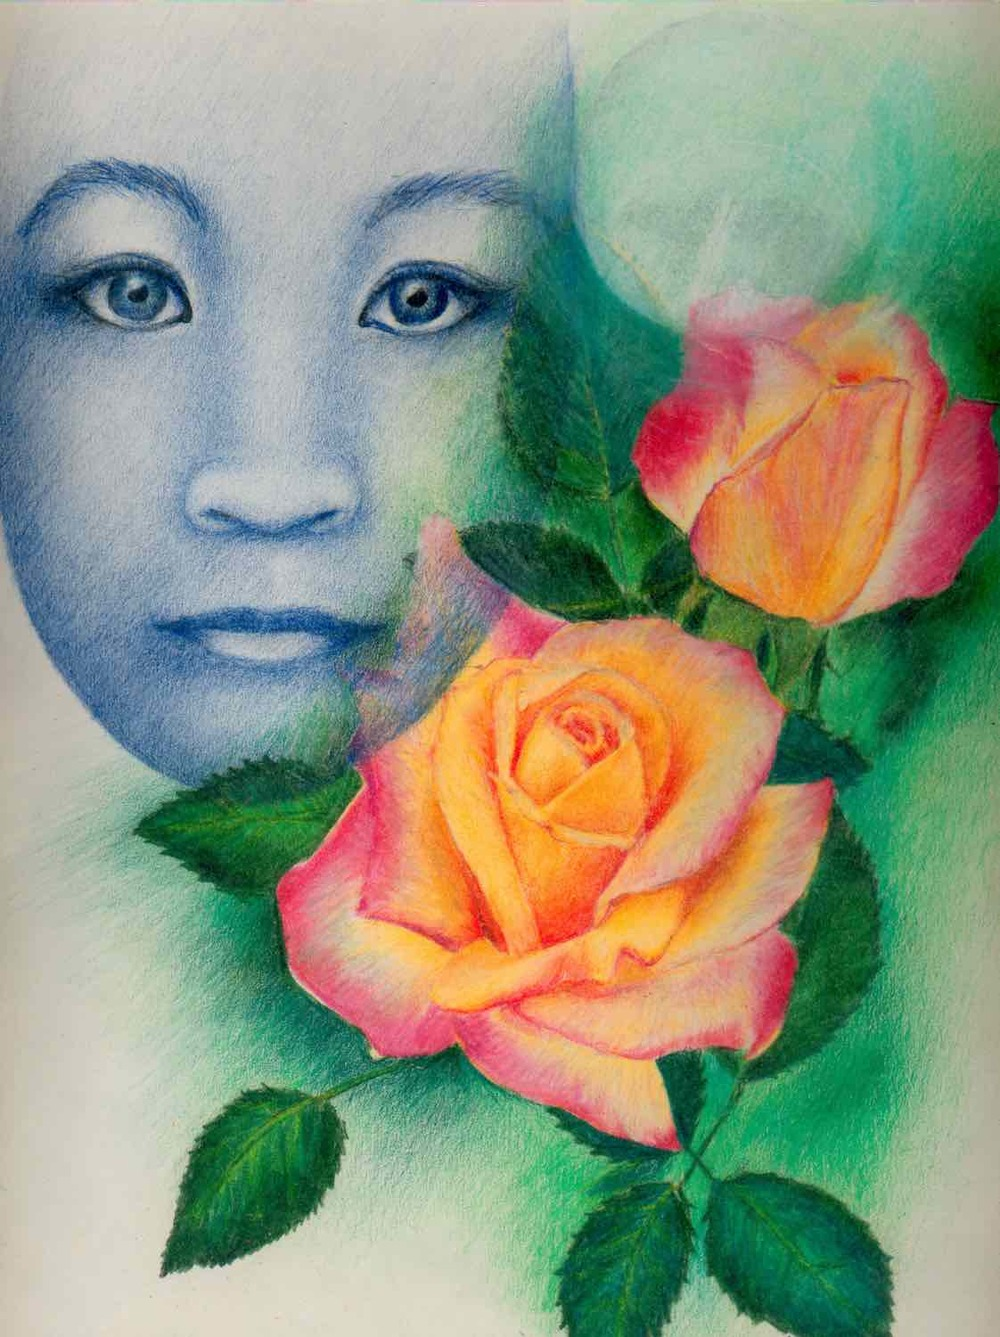 Face and Rose Colored Pencil